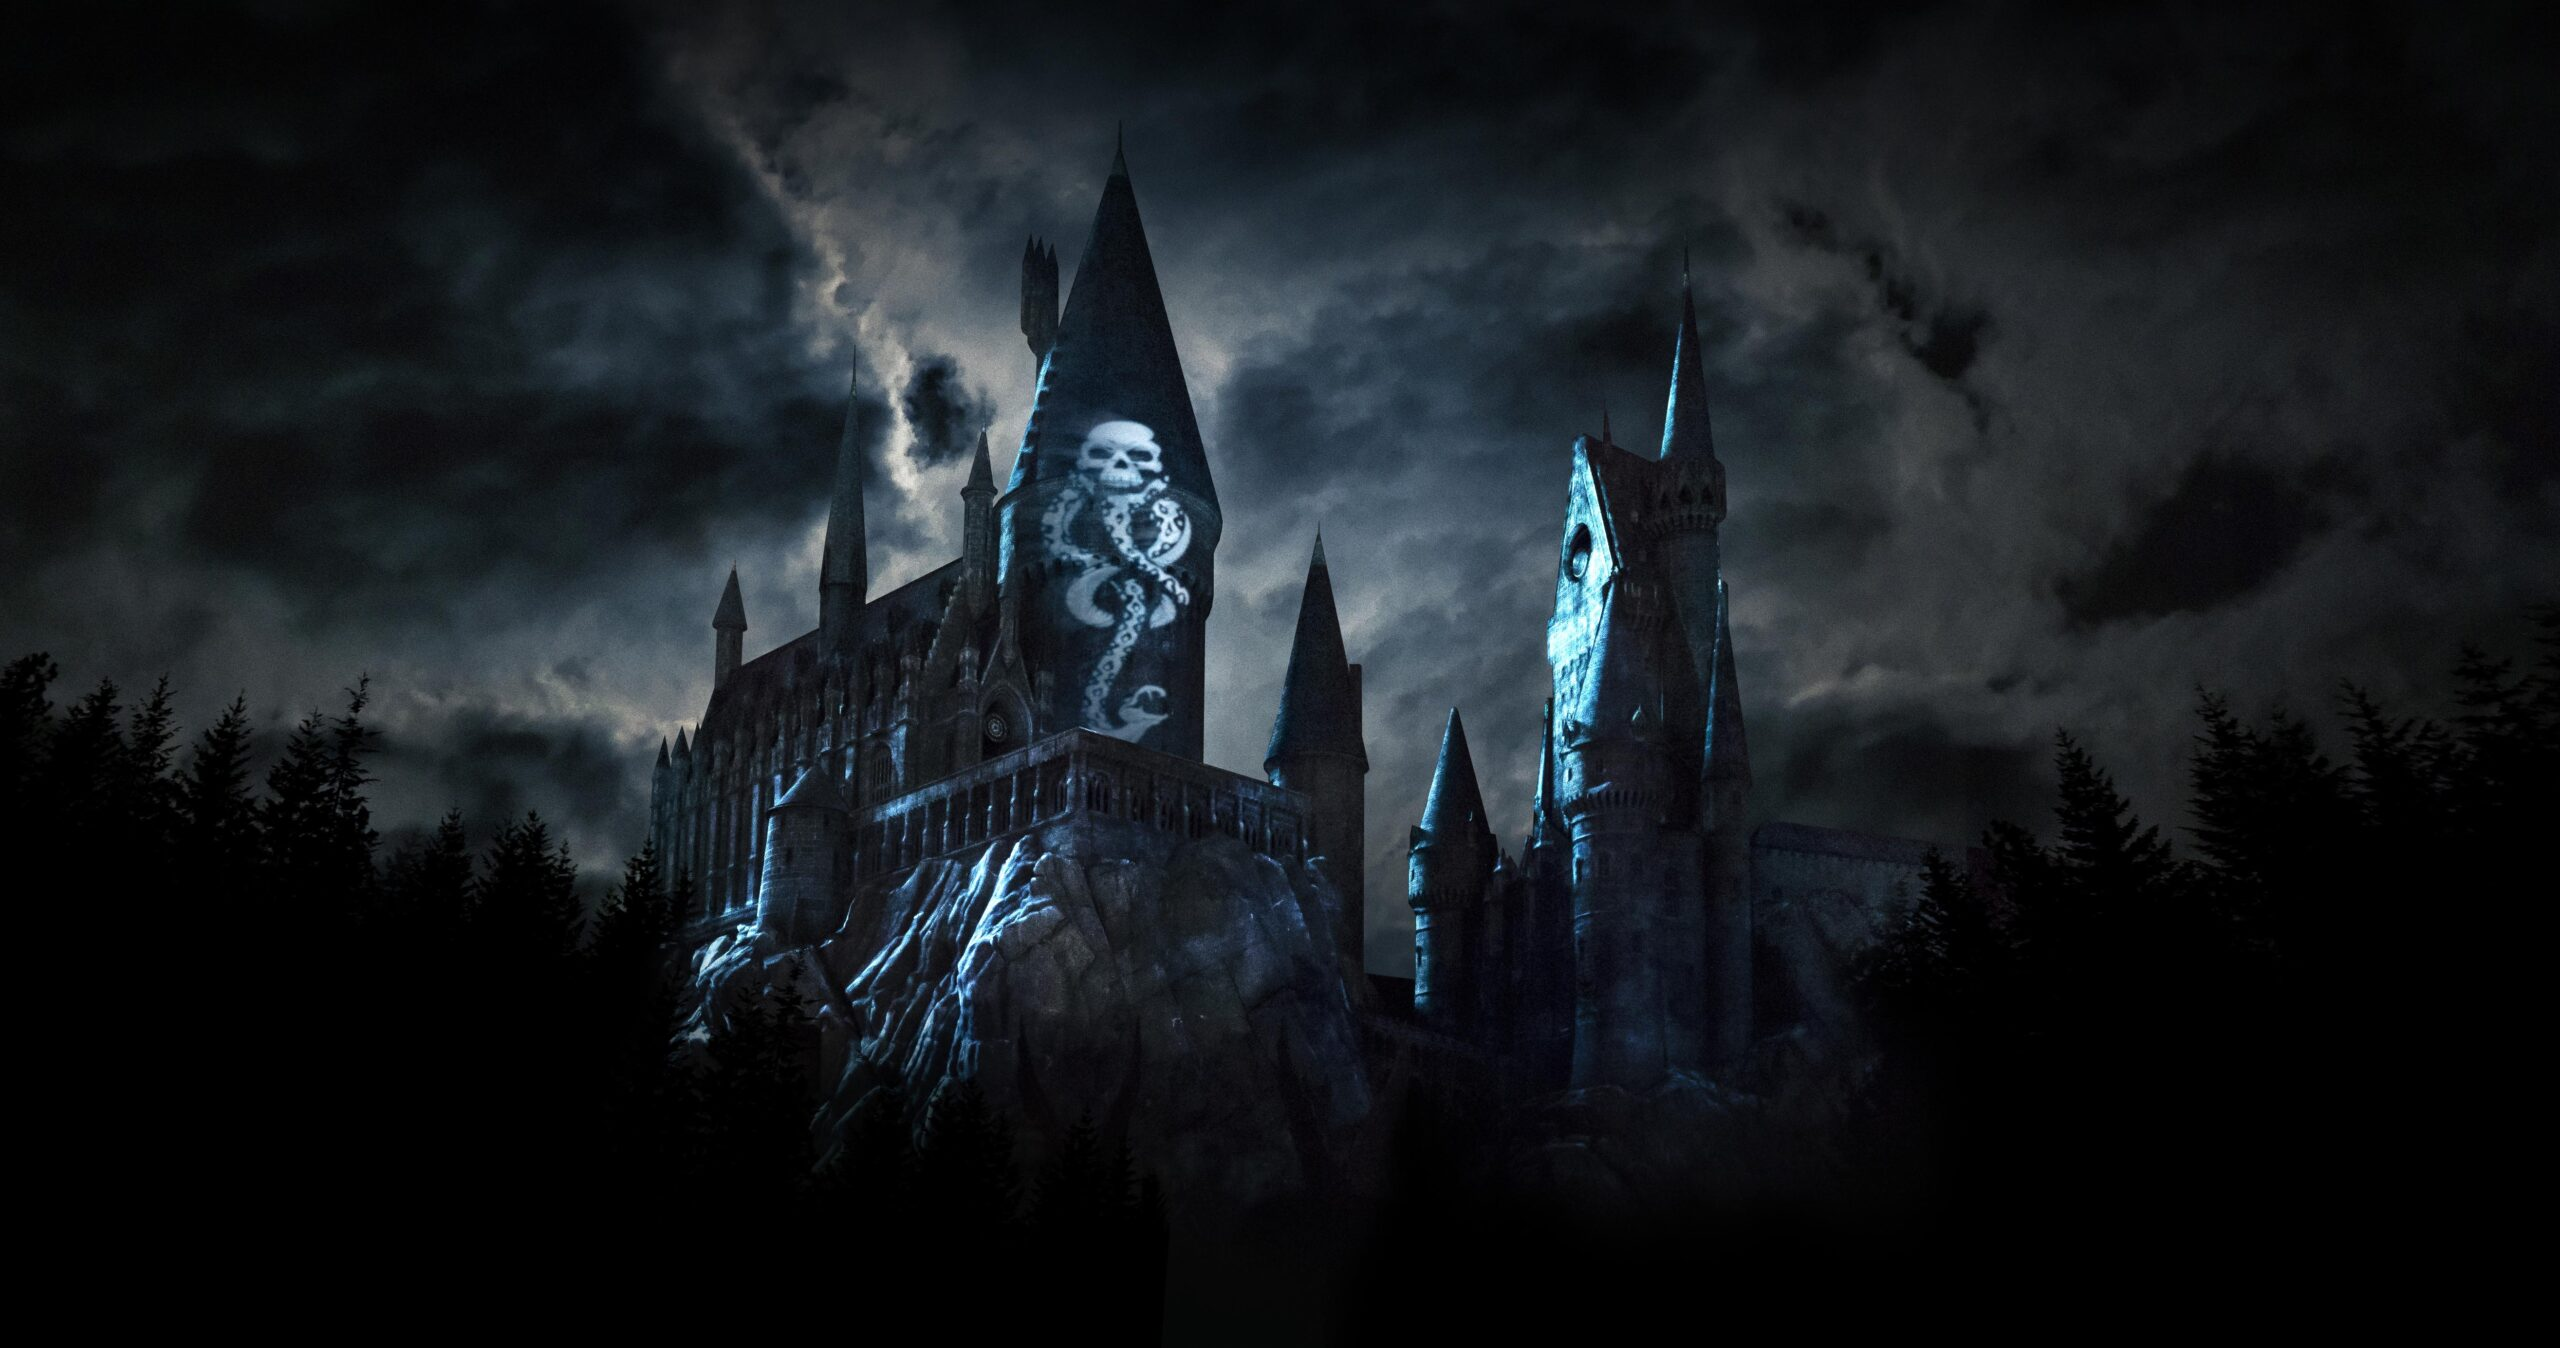 Experience the Wizarding World of Harry Potter